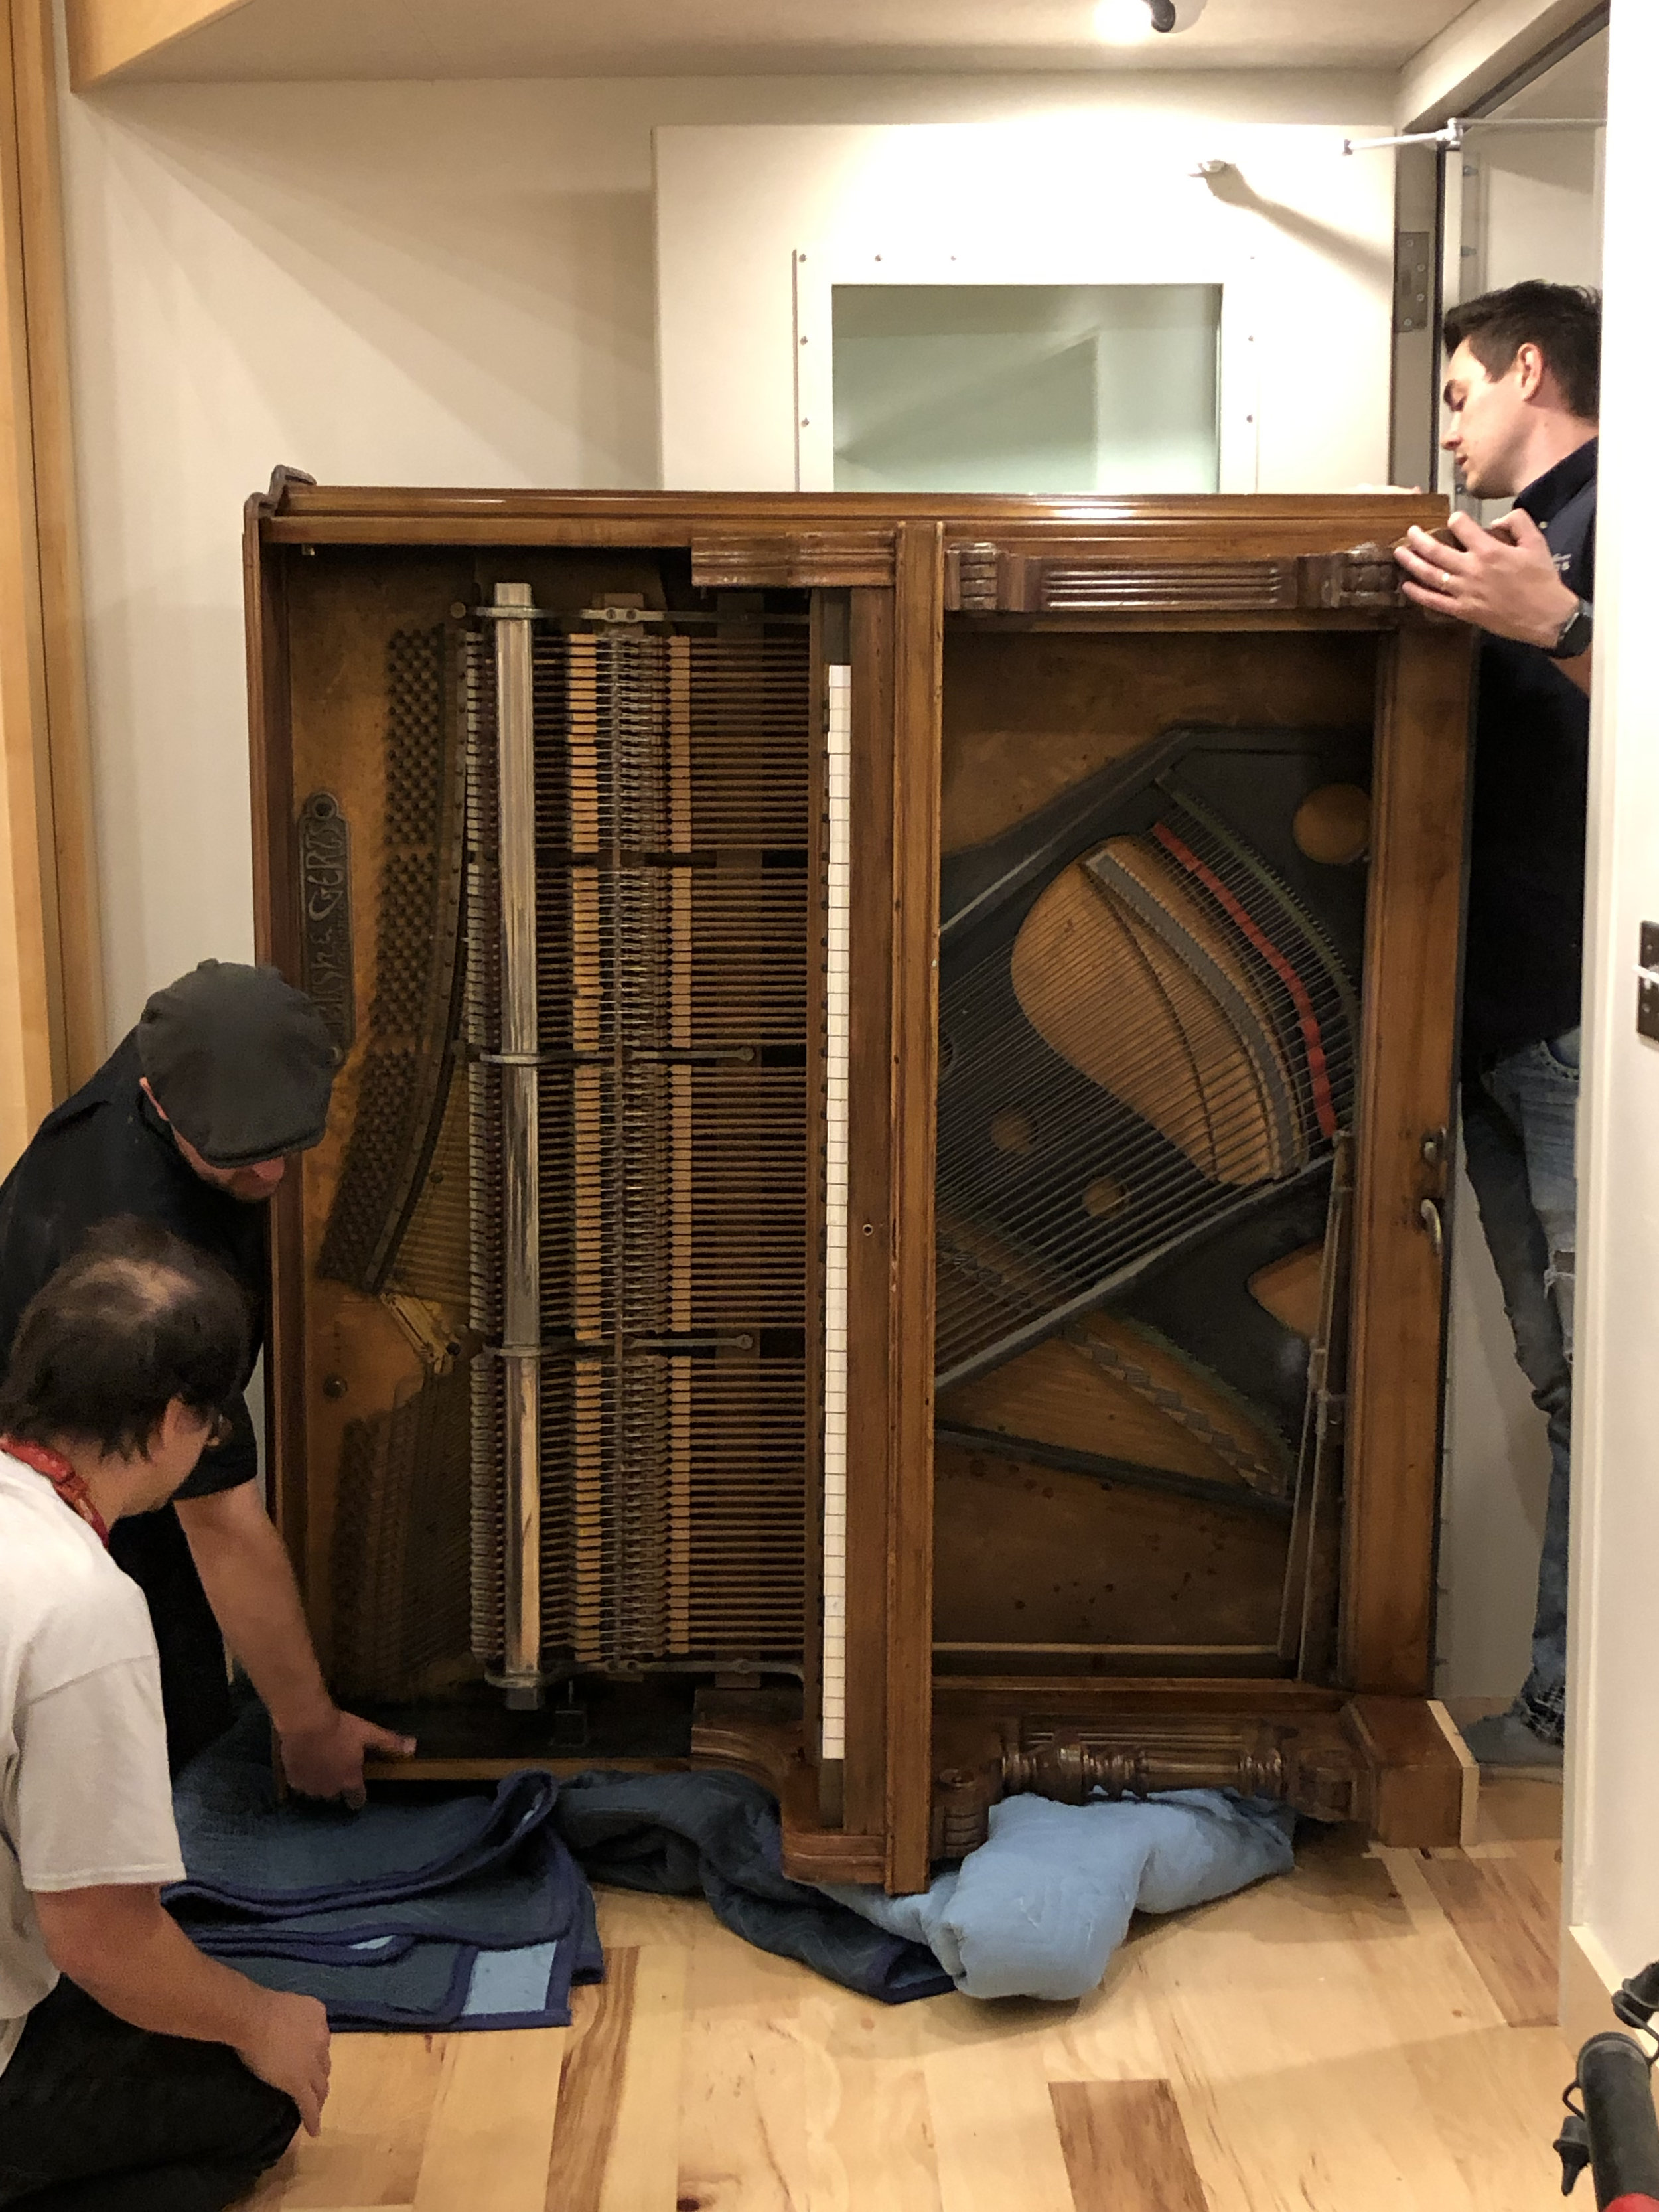 2 days before our first session in Studio 1, piano movers brought our old Bush and Gerts upright from storage and moved our Yamaha C7 from the house into the new space. The upright was the biggest challenge as it is incredibly heavy and wouldn't go through the doors and around the corners right side up.